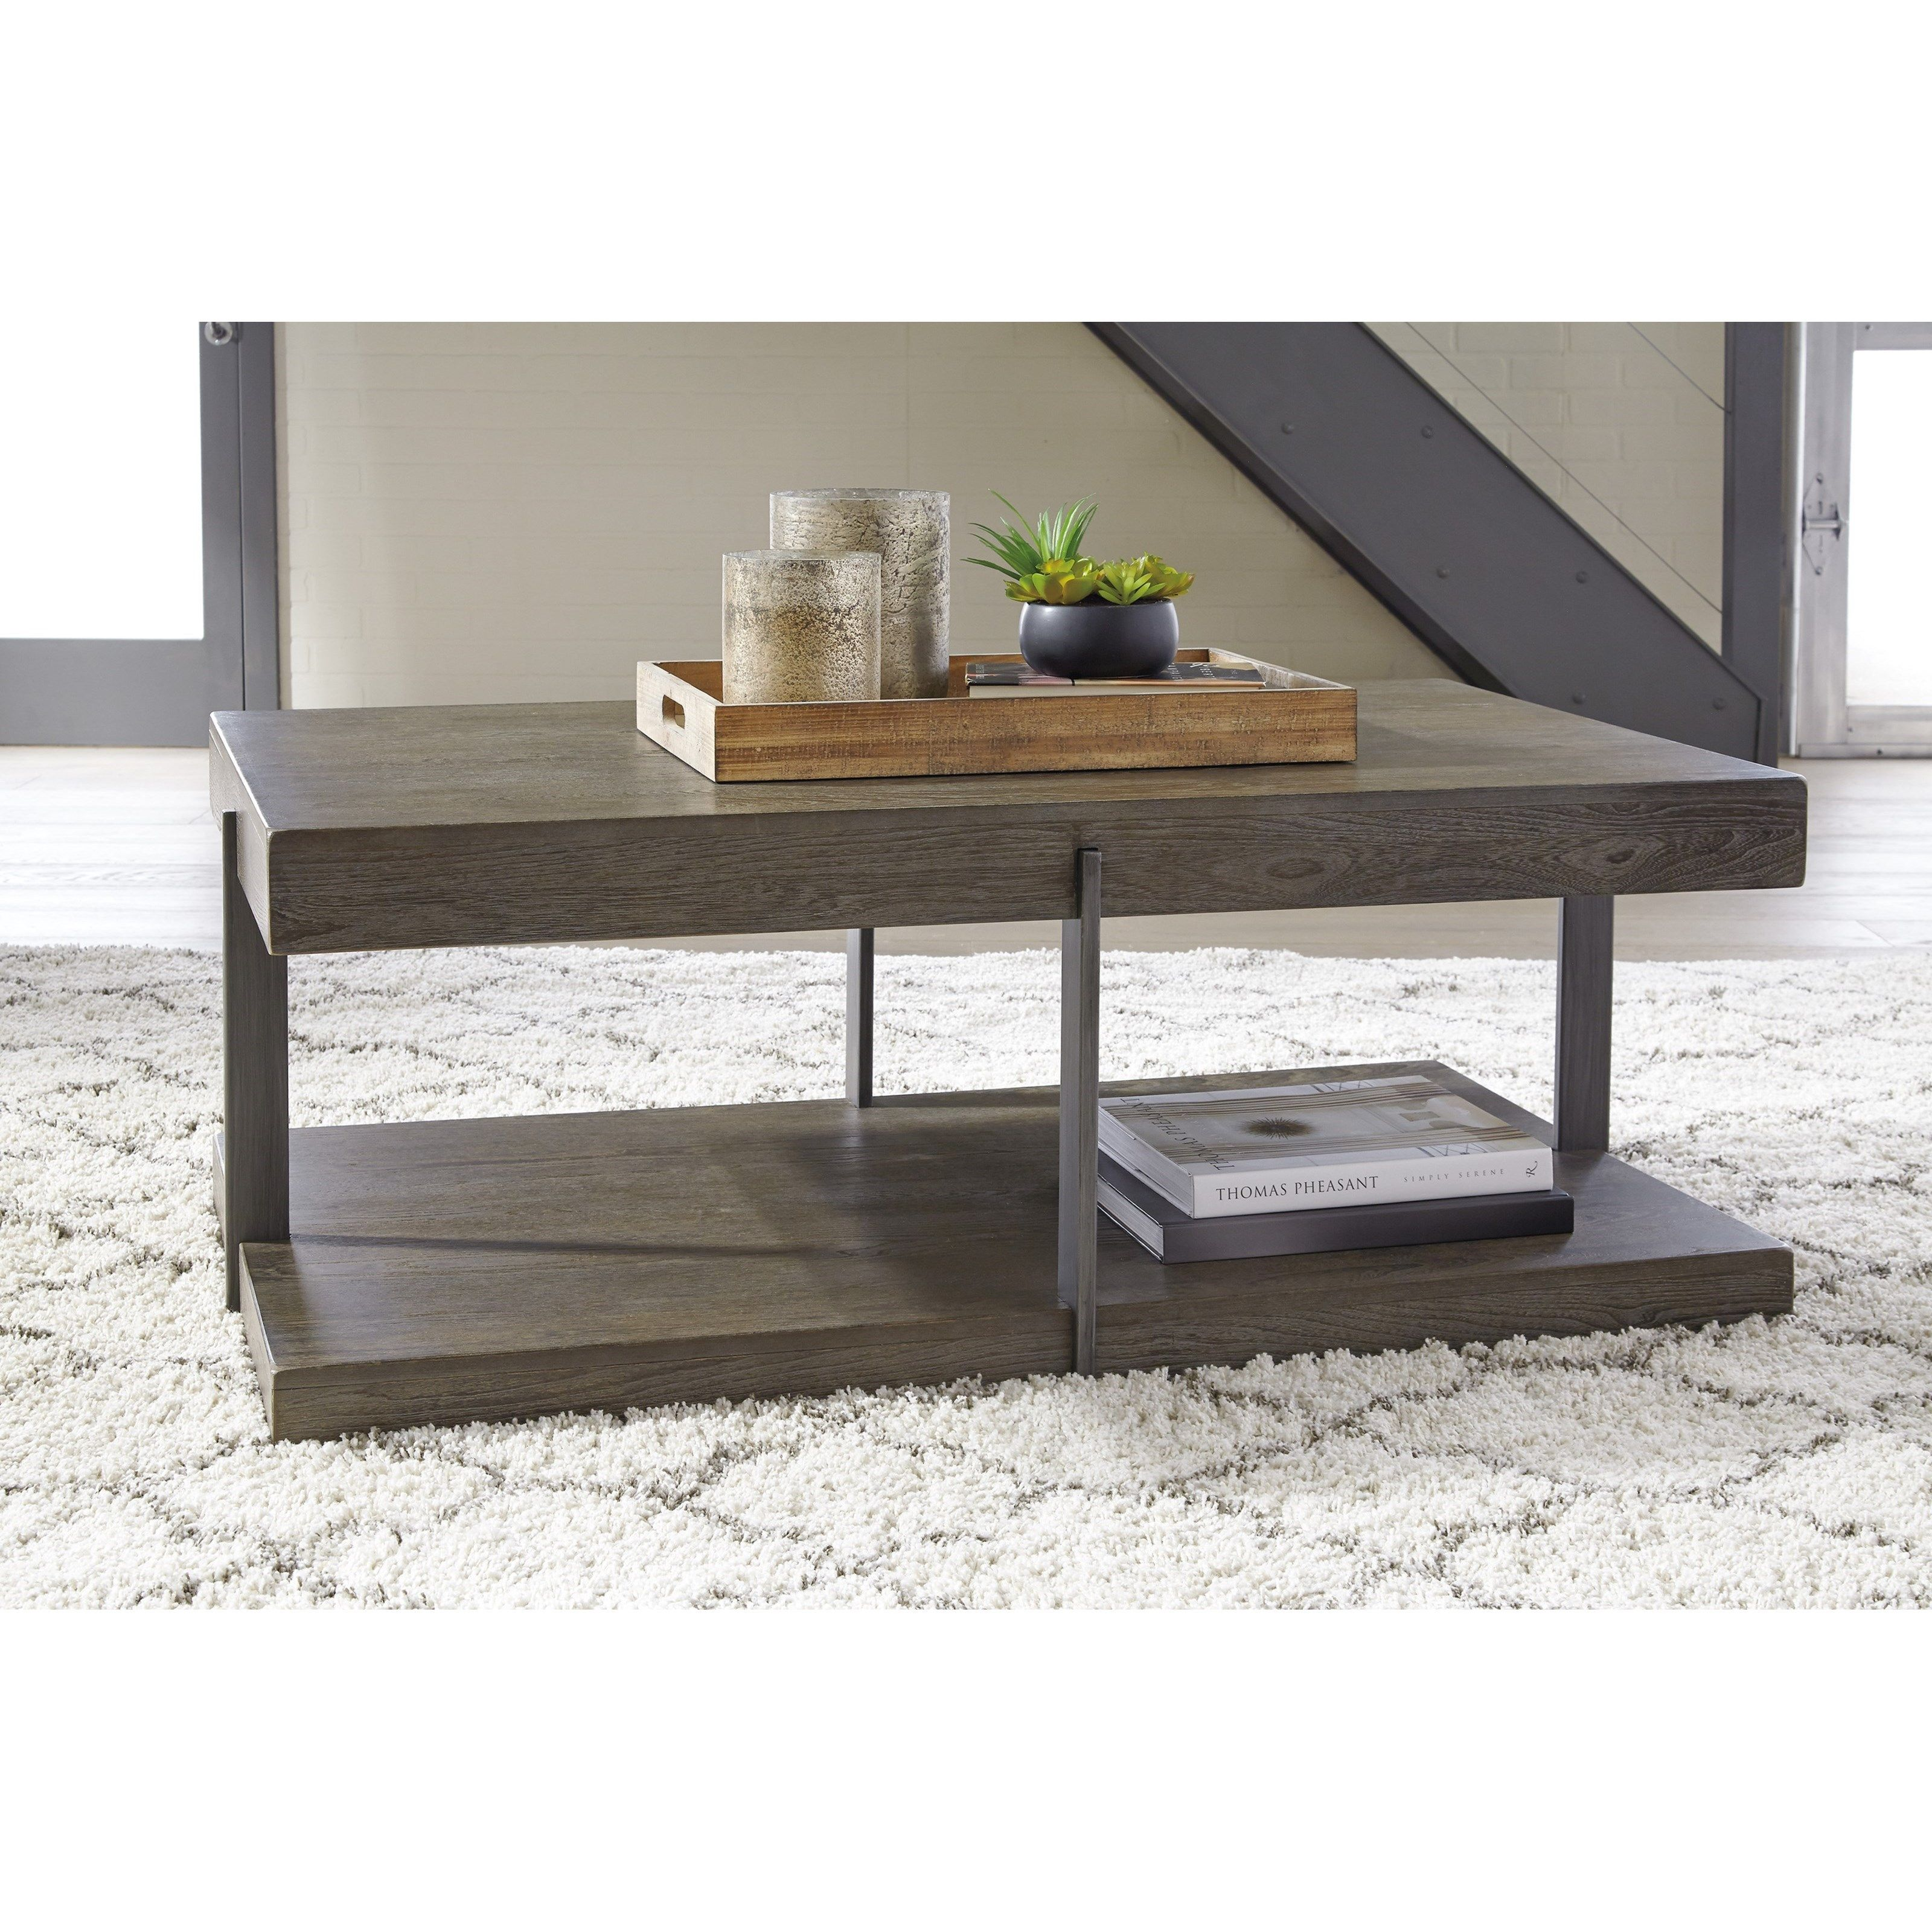 Signature Design By Ashley Gantoni Industrial Rectangular Cocktail Table -